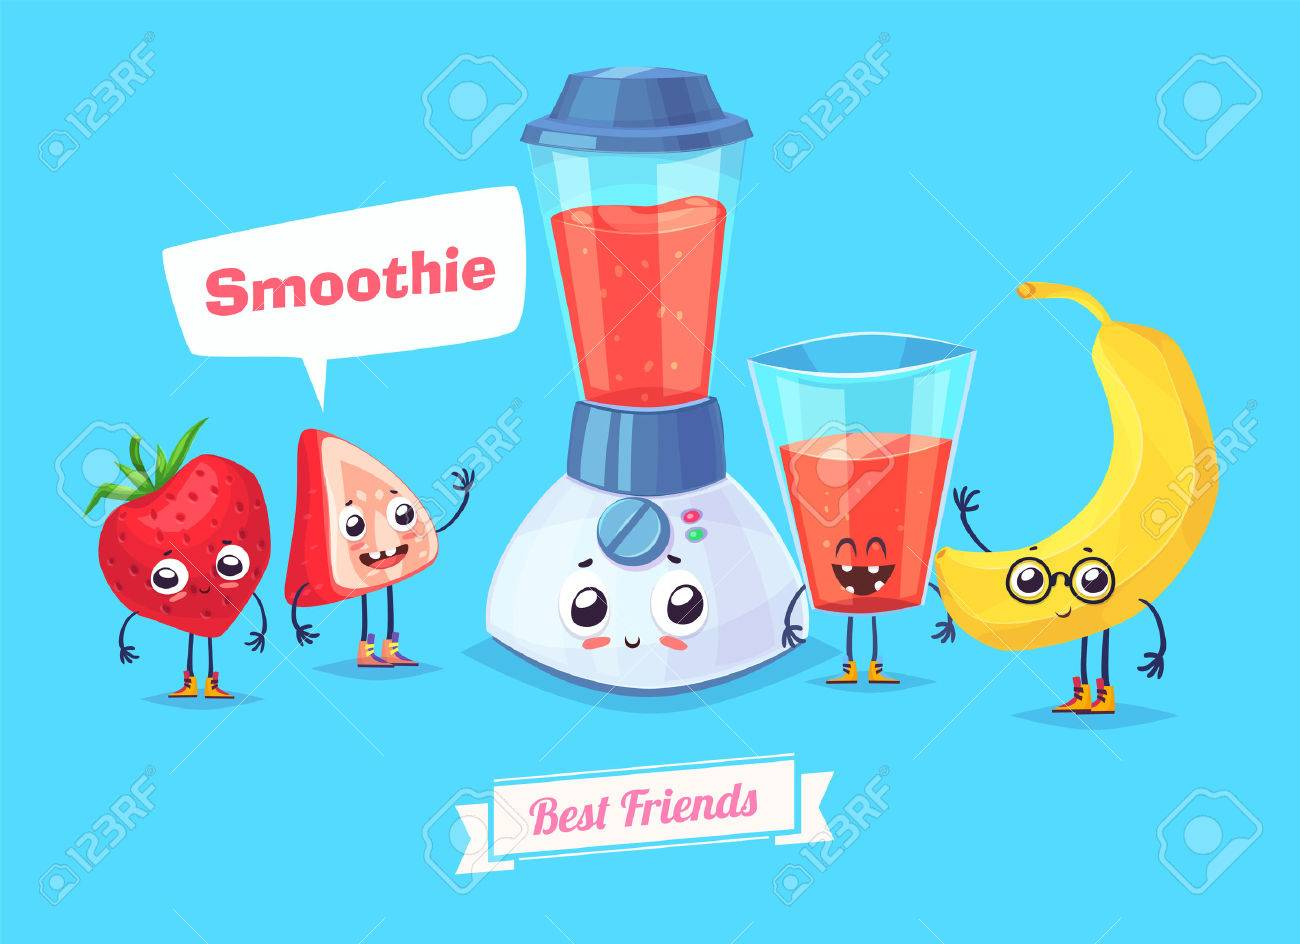 Healthy Breakfast. Funny characters banana berry and a glass of smoothie. Funny food. - 52177849